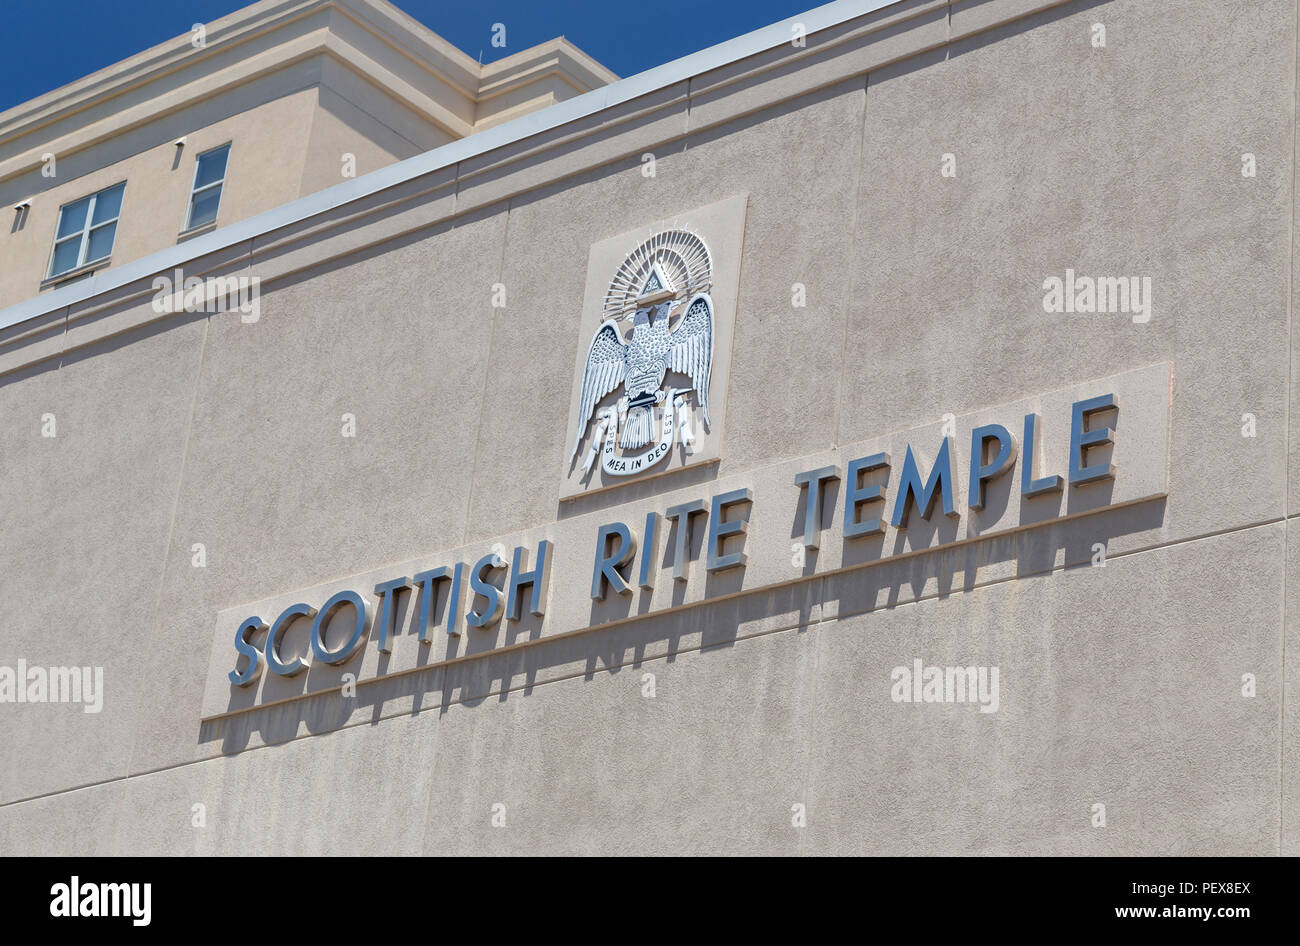 Scottish Rite Temple in Knoxville, TN. - Stock Image